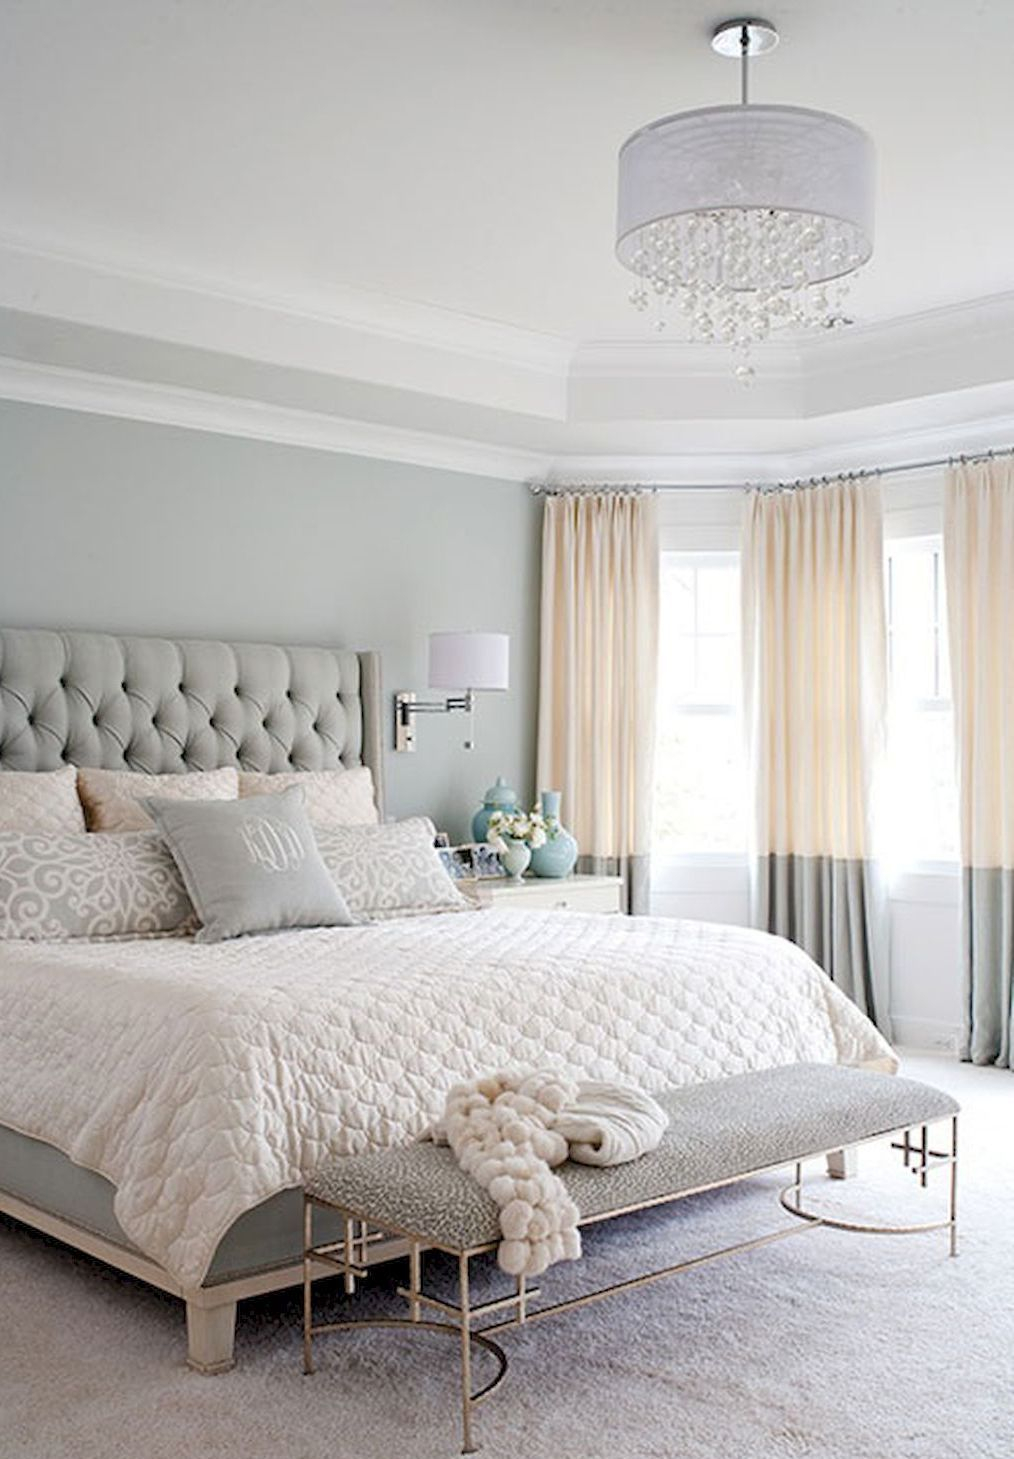 Pin Carly Ellwood On Relaxing Master Bedroom Home with regard to size 1014 X 1459